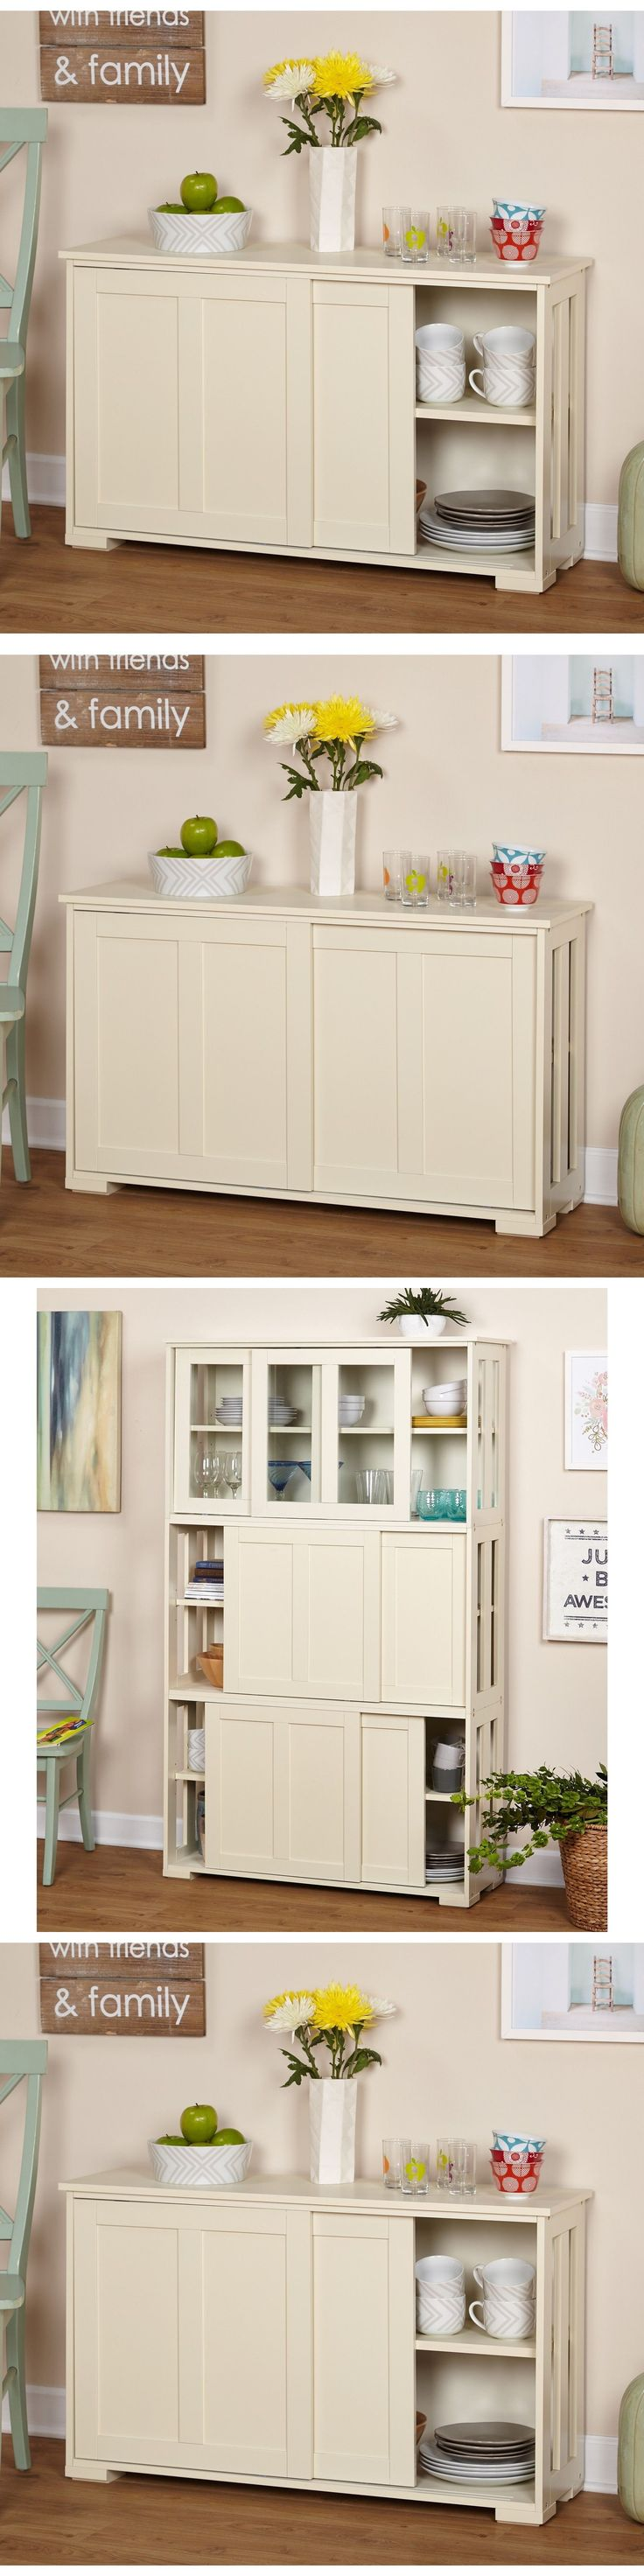 Sideboards and Buffets 183322: White Buffet Cabinet Storage Kitchen Sideboard Cupboard Dining China Hutch Room -> BUY IT NOW ONLY: $103.99 on eBay!